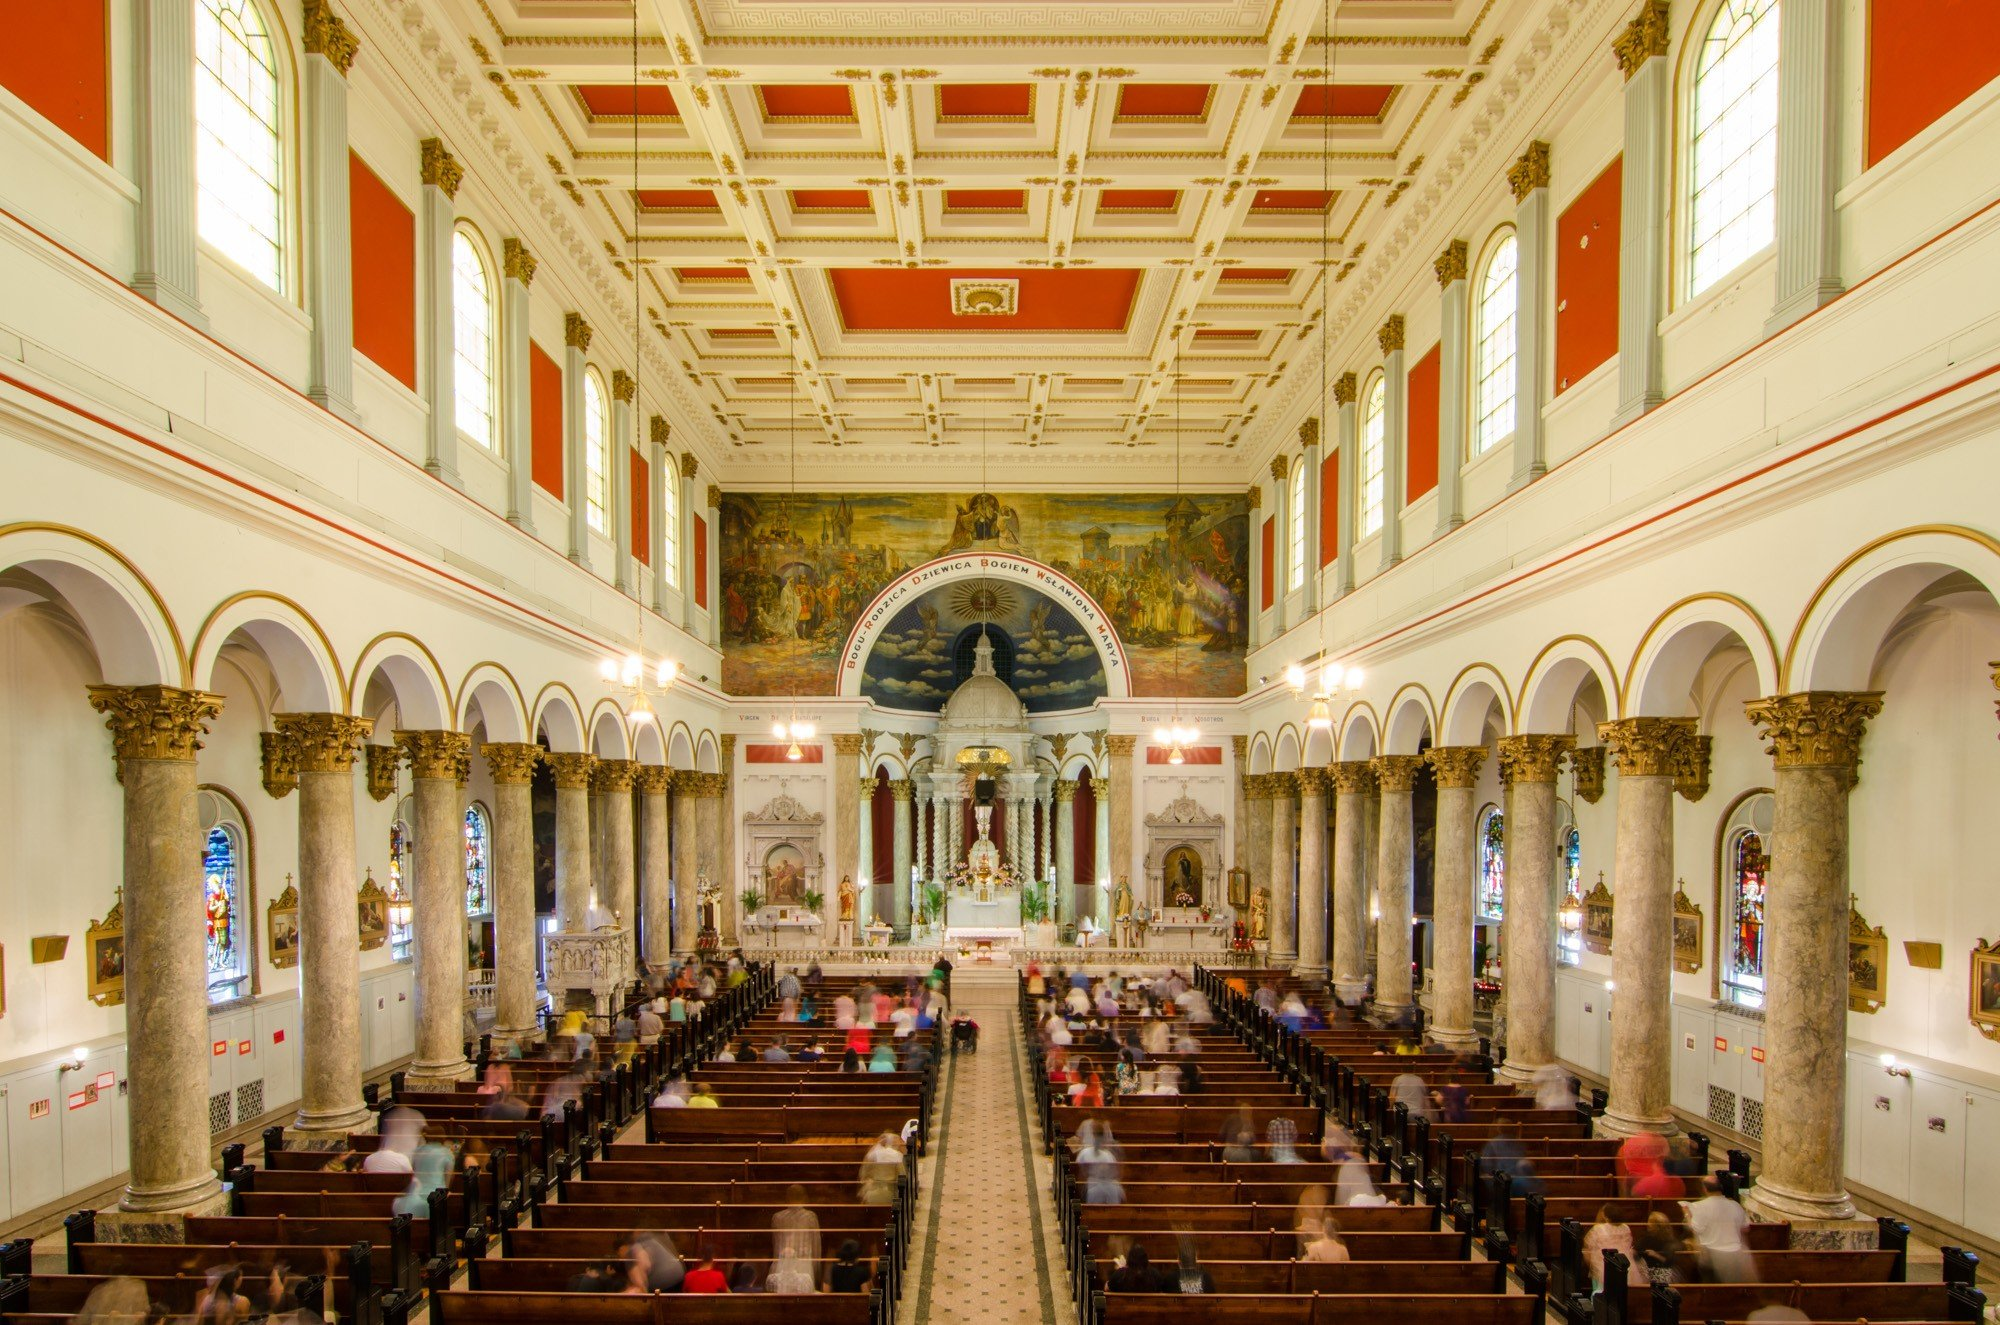 Each side of the church's interior is framed by 12 marble columns. At the front and center of the church stands a statue of Our Lady of Częstochowa, the Polish Virgin Mary. Source: Eric Allix Rogers, Open House Chicago